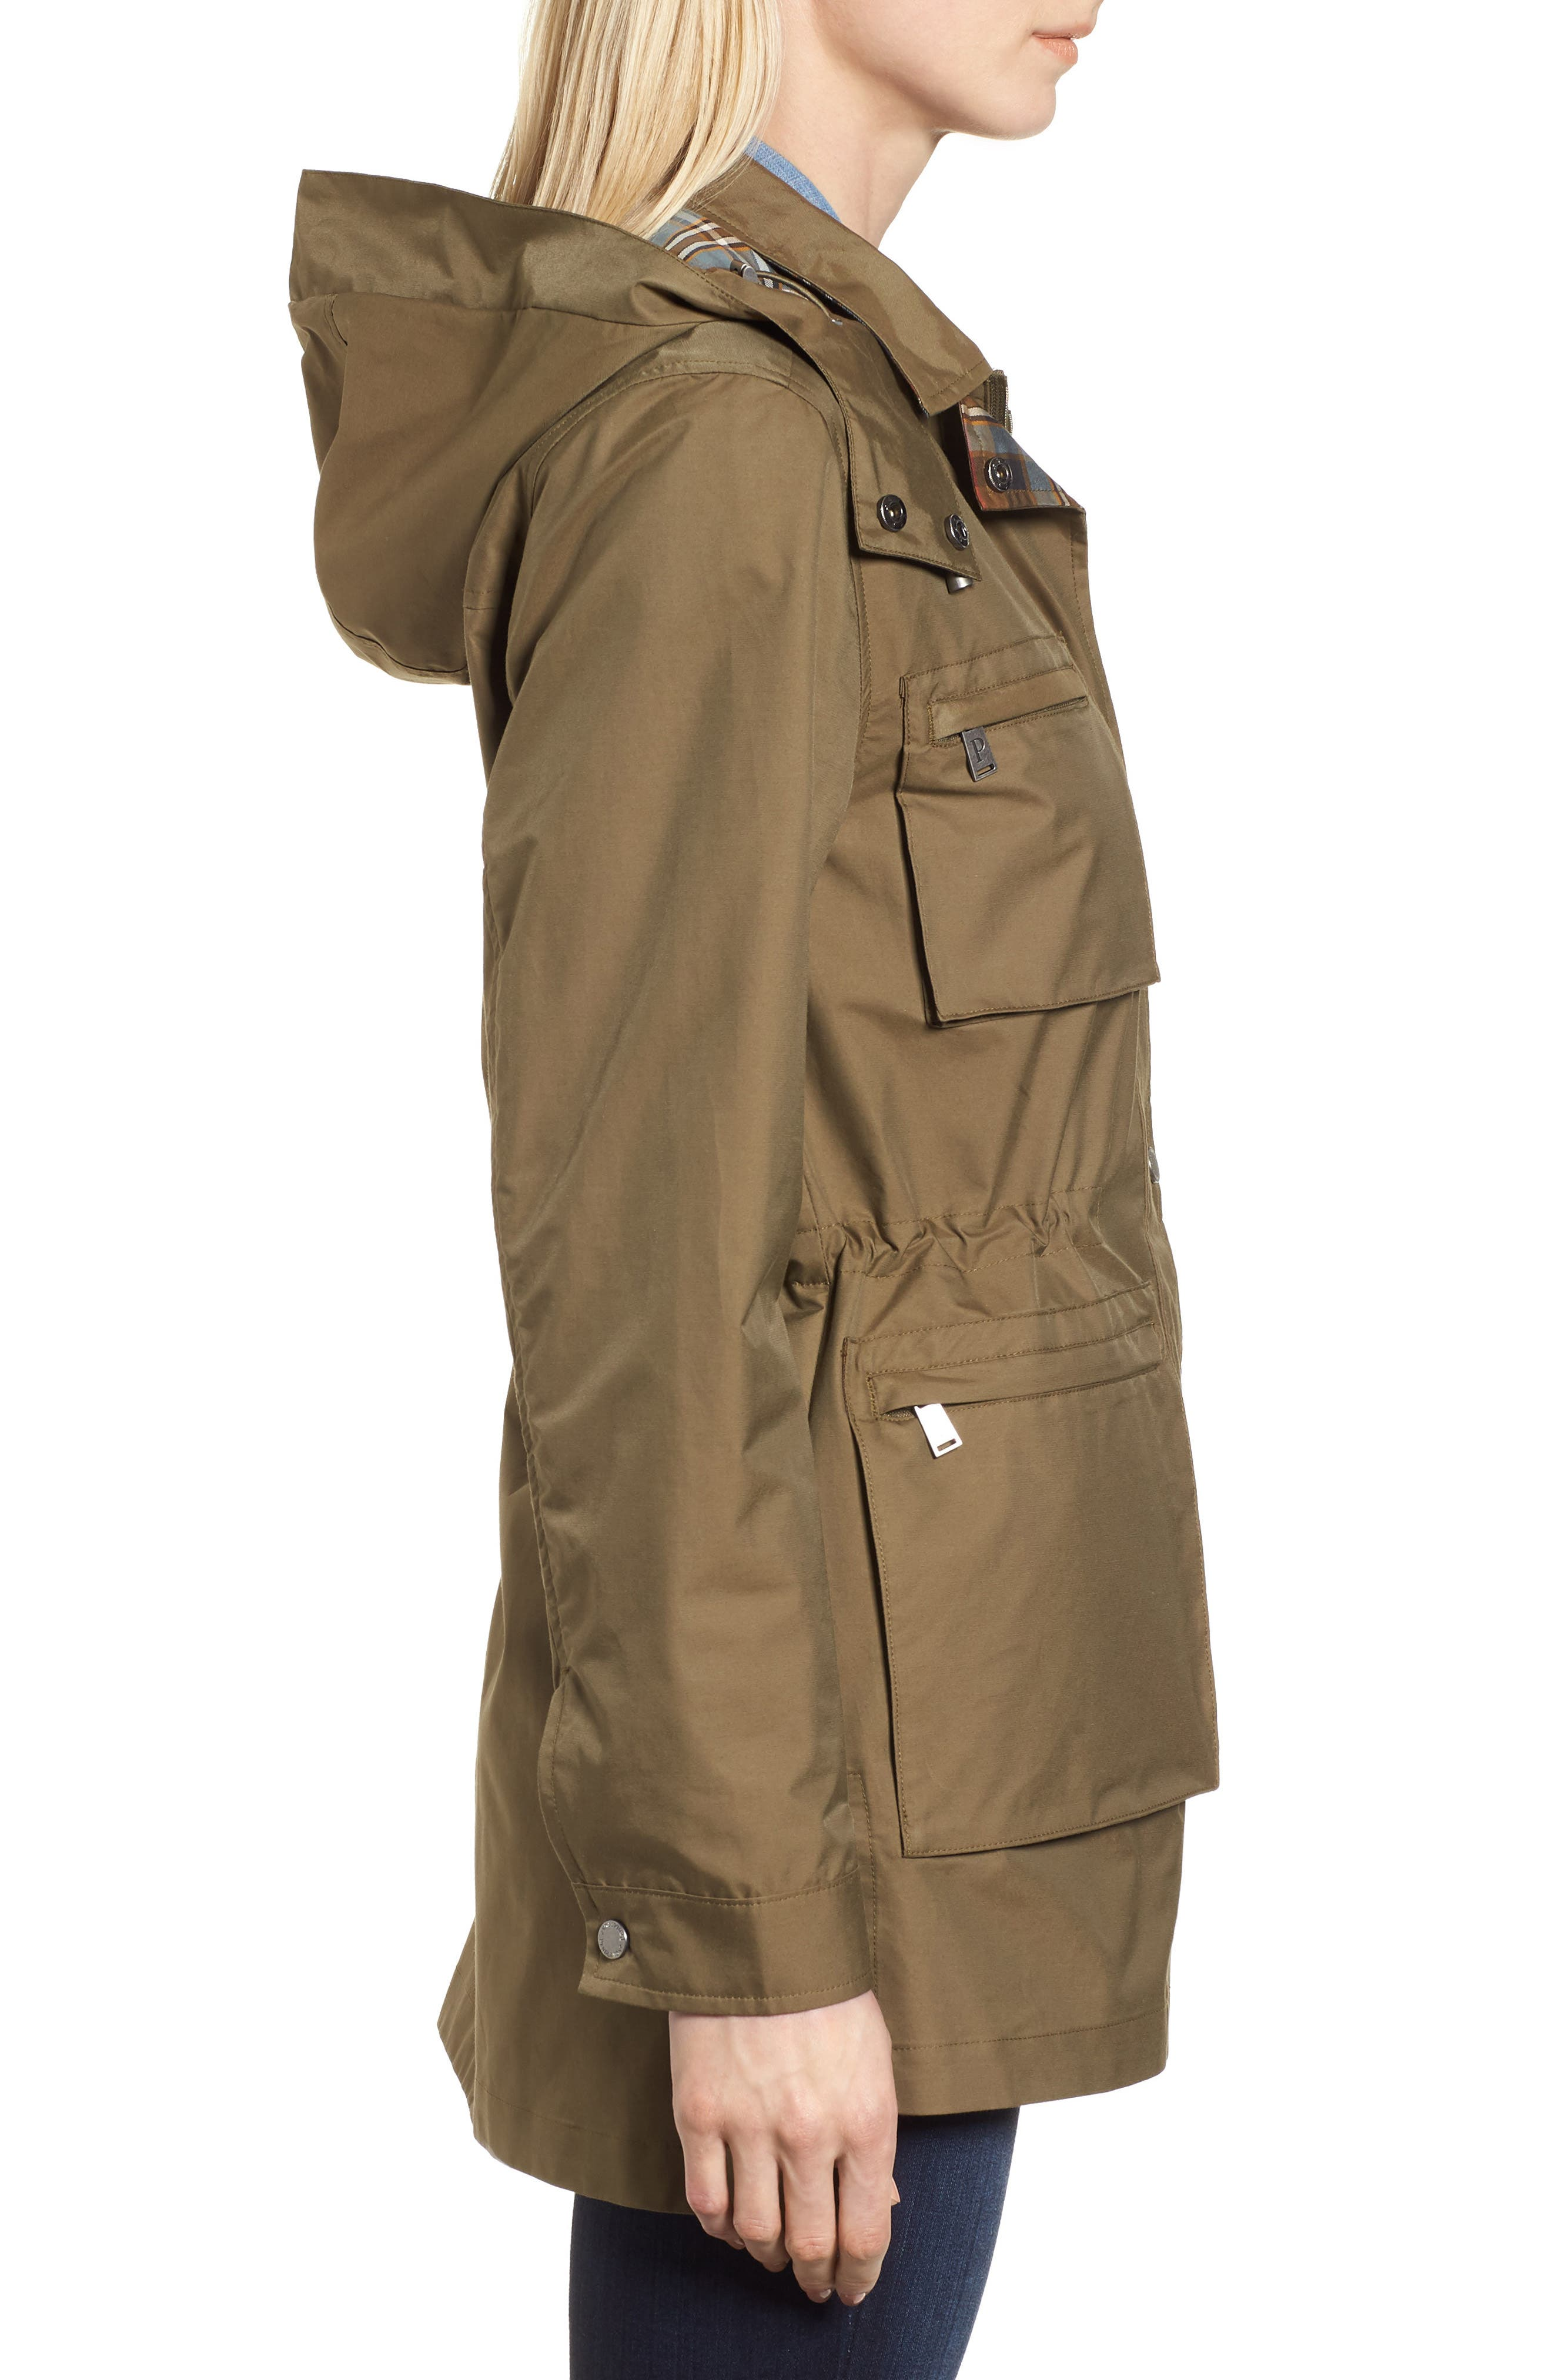 Taylor Utility Jacket,                             Alternate thumbnail 3, color,                             Olive